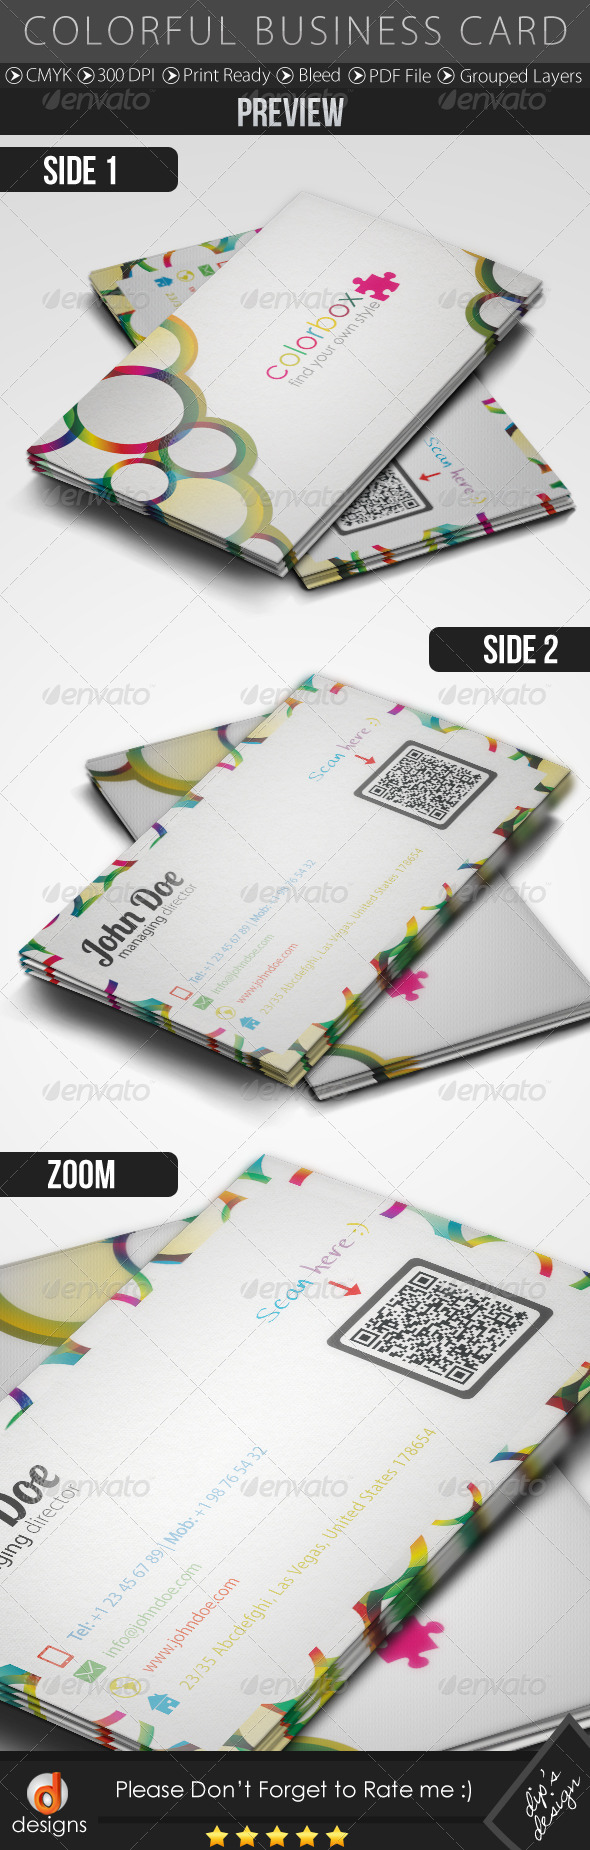 Colorful Business Card - Corporate Business Cards